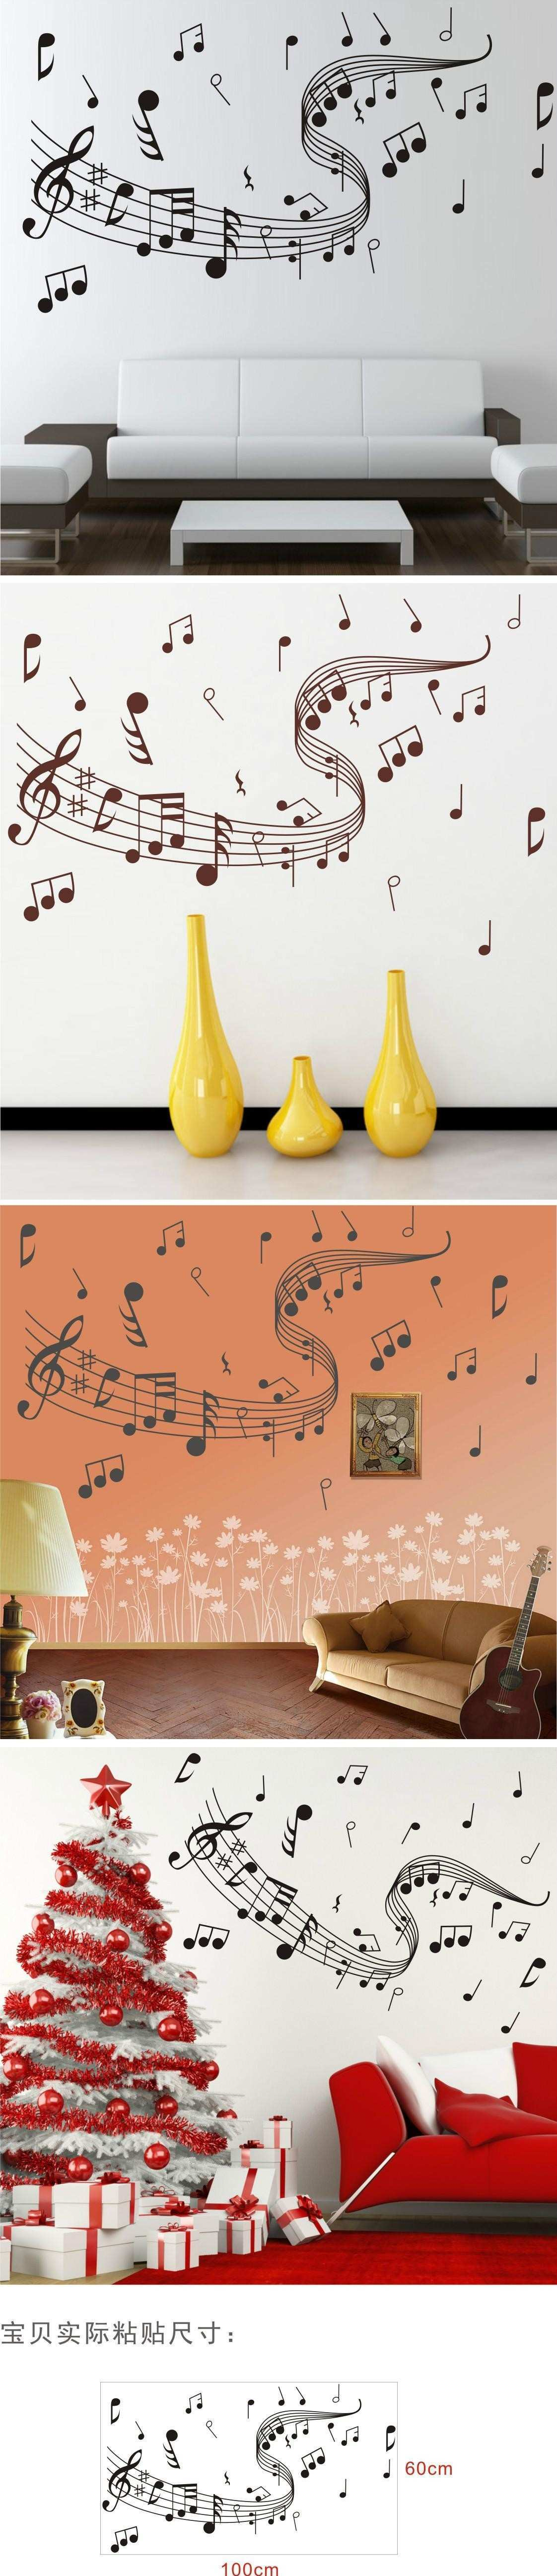 39 Awesome Vinyl Wall Art Decals